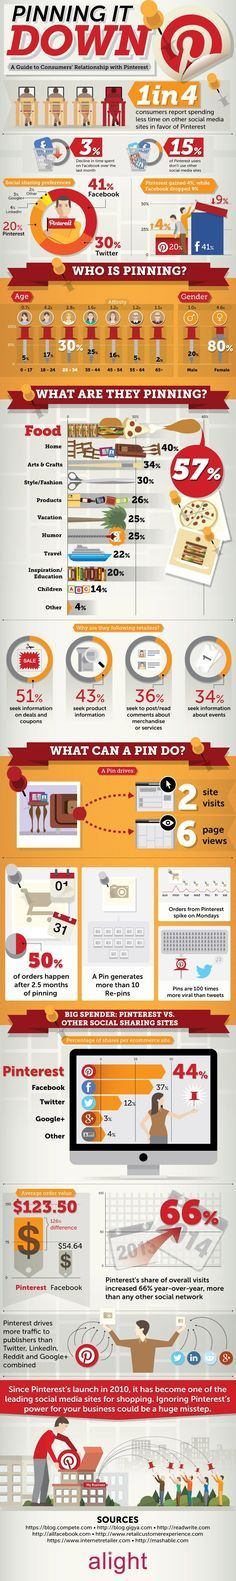 Pinning it Down: A Guide to Consumers Relationship with #Pinterest - #socialmedia #infographic